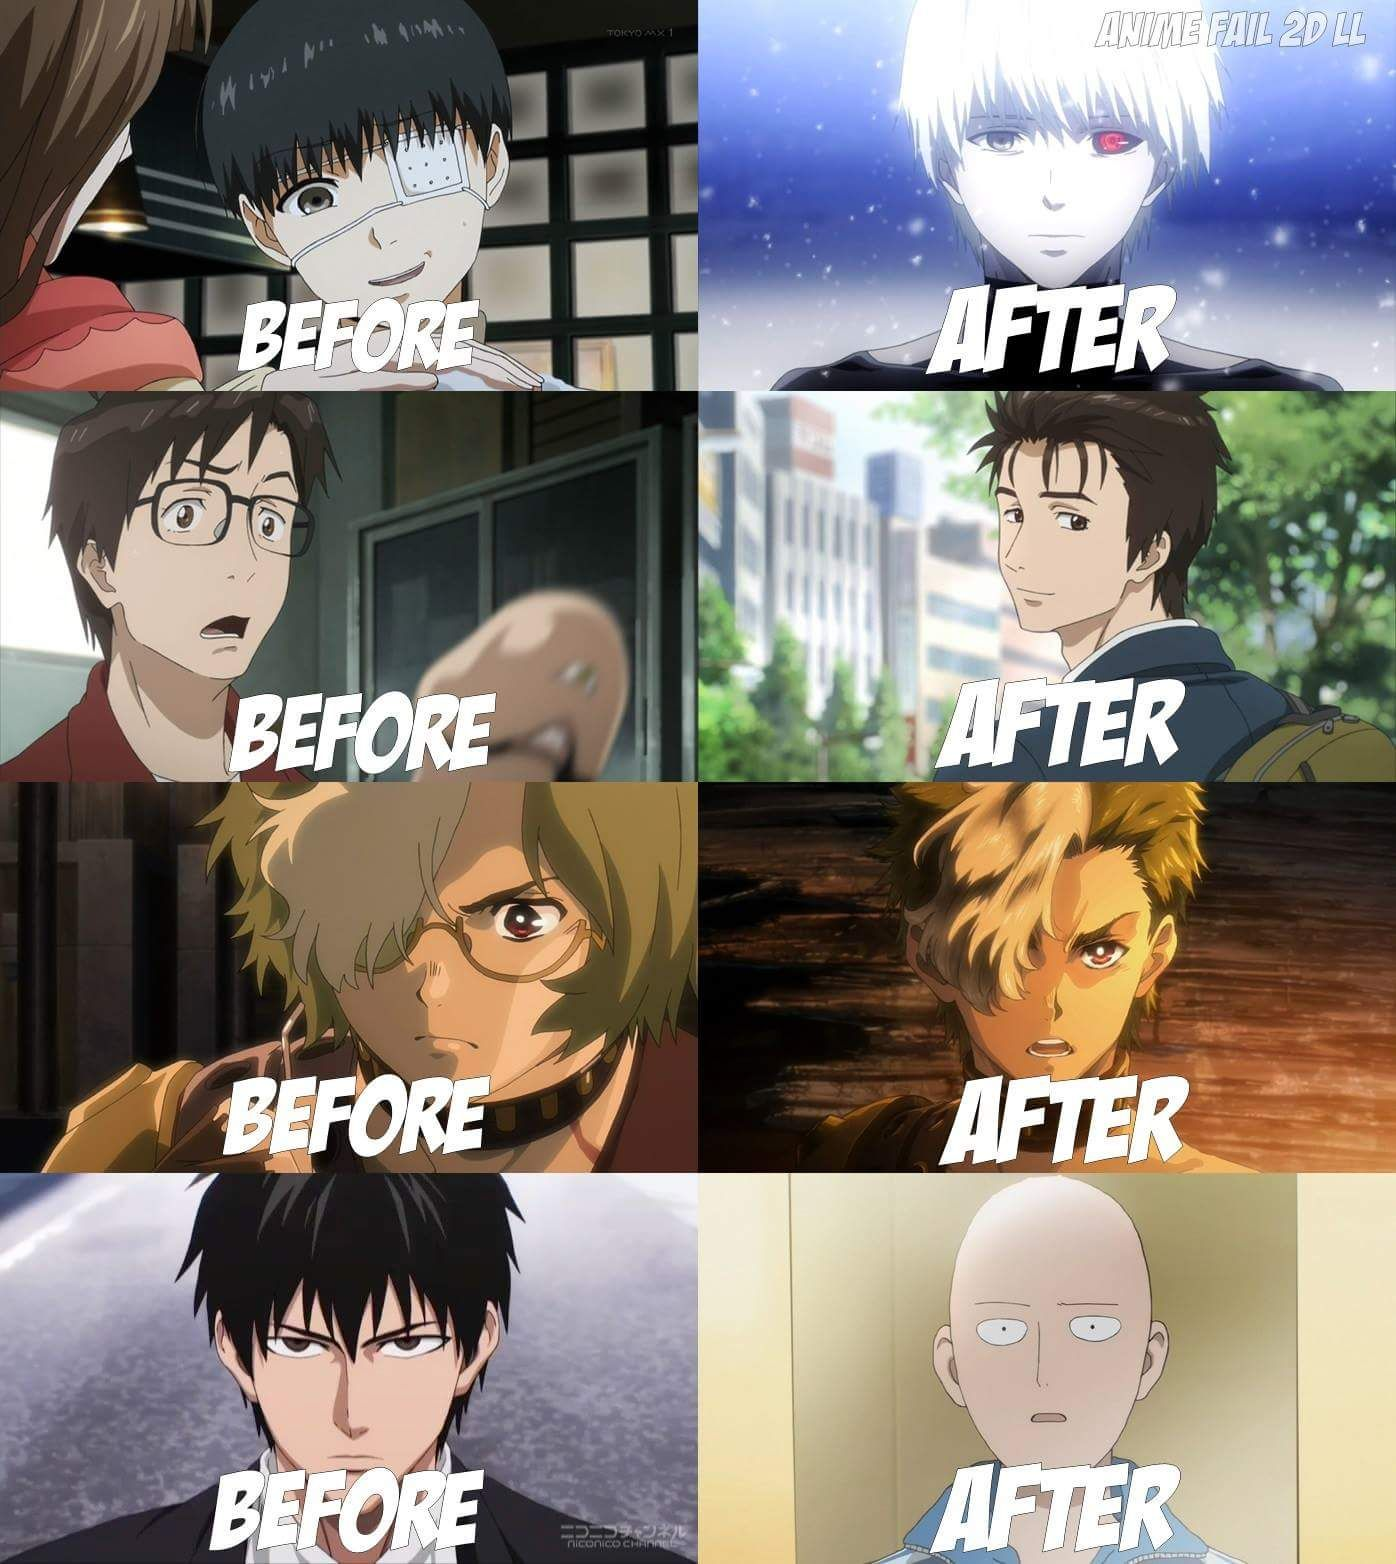 FAN MADE FAN ART ANIME & MANGA Changed Hairstyle of Protagonist